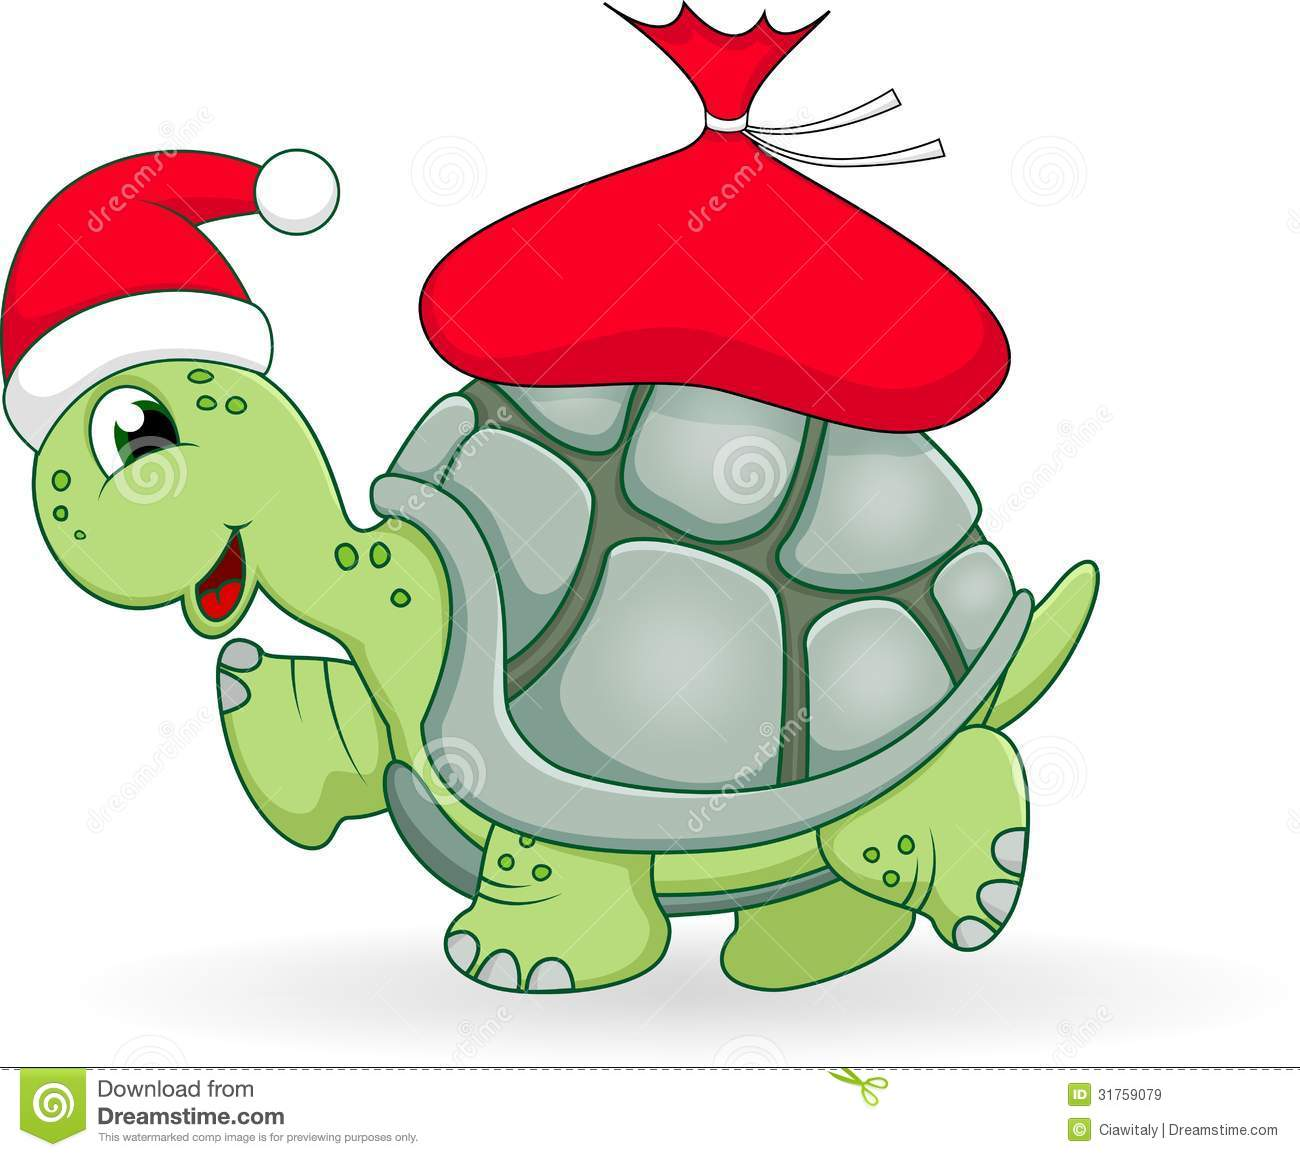 Christmas Turtle Cartoon Royalty Free Stock Images - Image: 31759079